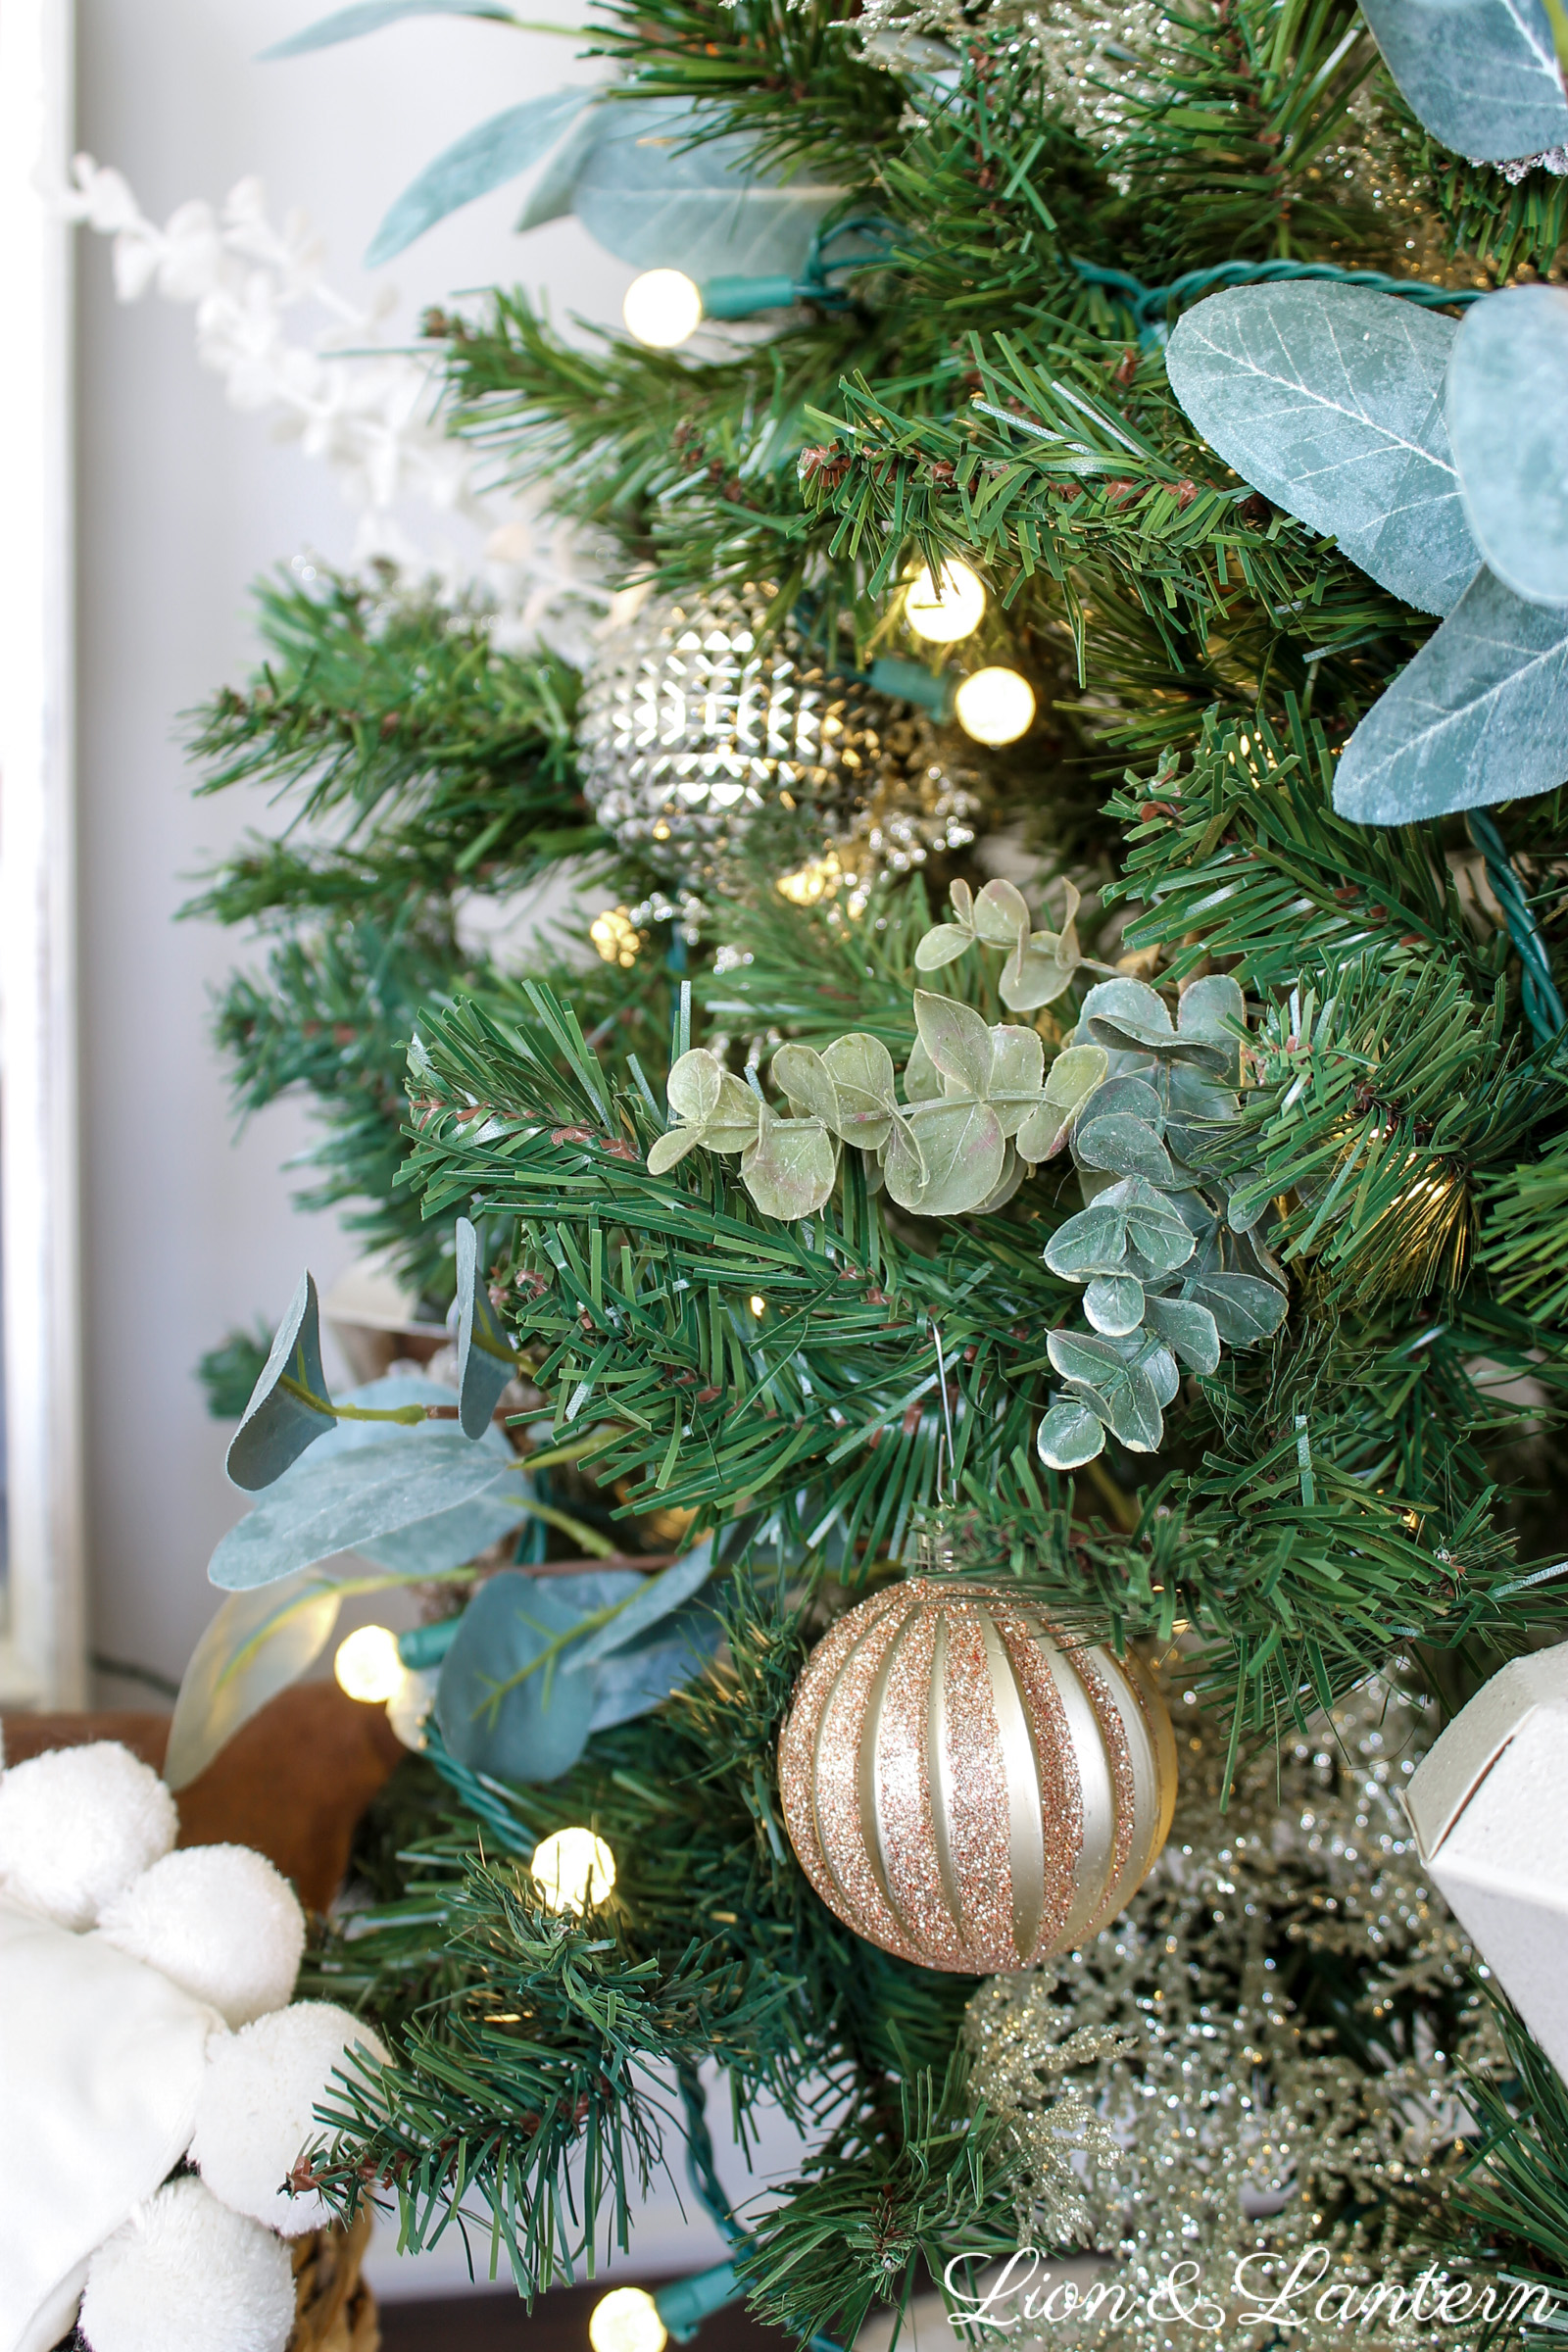 Simple Rustic Christmas Tree at LionAndLantern.com. Farmhouse Christmas, DIY Christmas decor, Christmas tree inspiration, eucalyptus, copper, gold, silver, pinecones